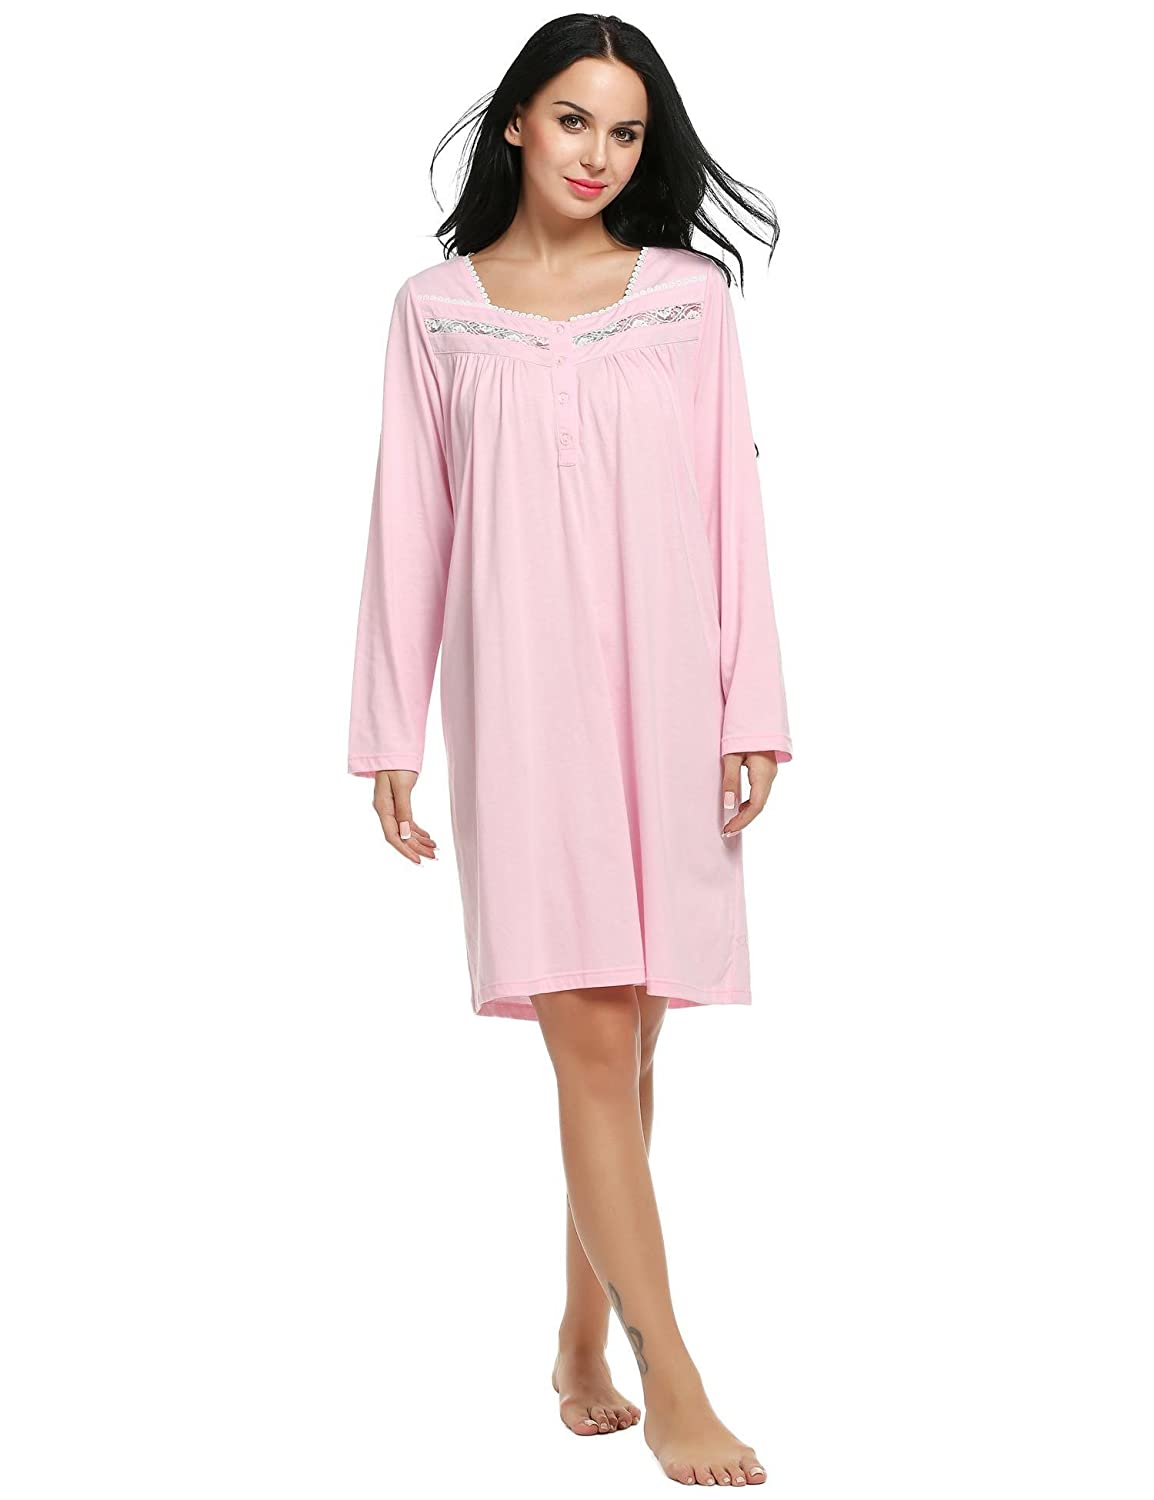 Ekouaer Sleepshirt Womens Long Sleeve Nightgown Cotton Sleepwear S-XXL XL) EKK005167_P_XL#